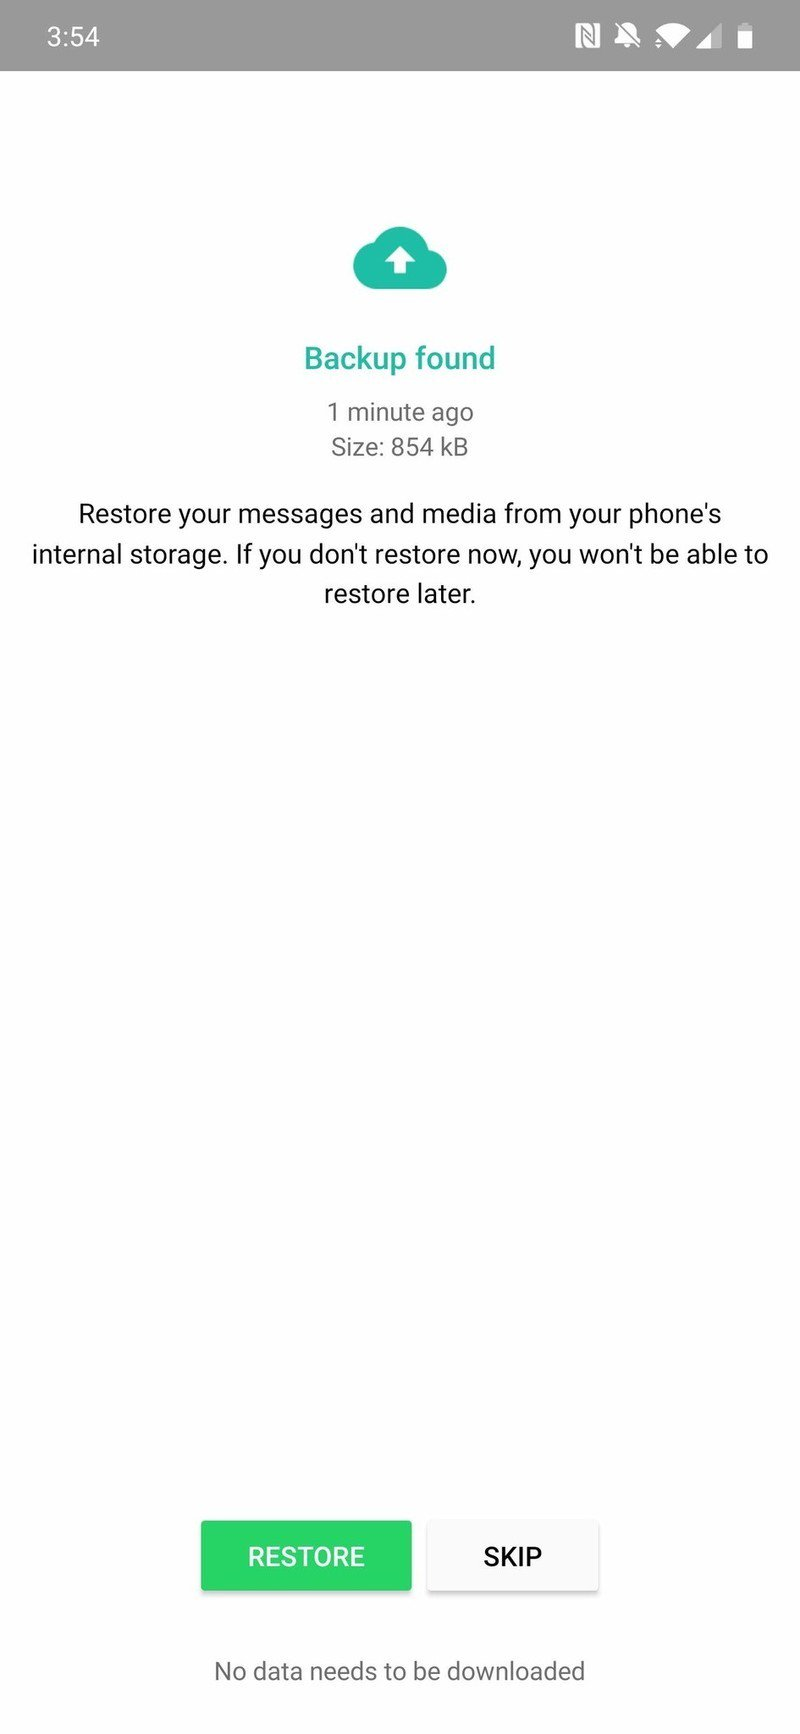 whatsapp-backup-messages-17.jpg?itok=Hss